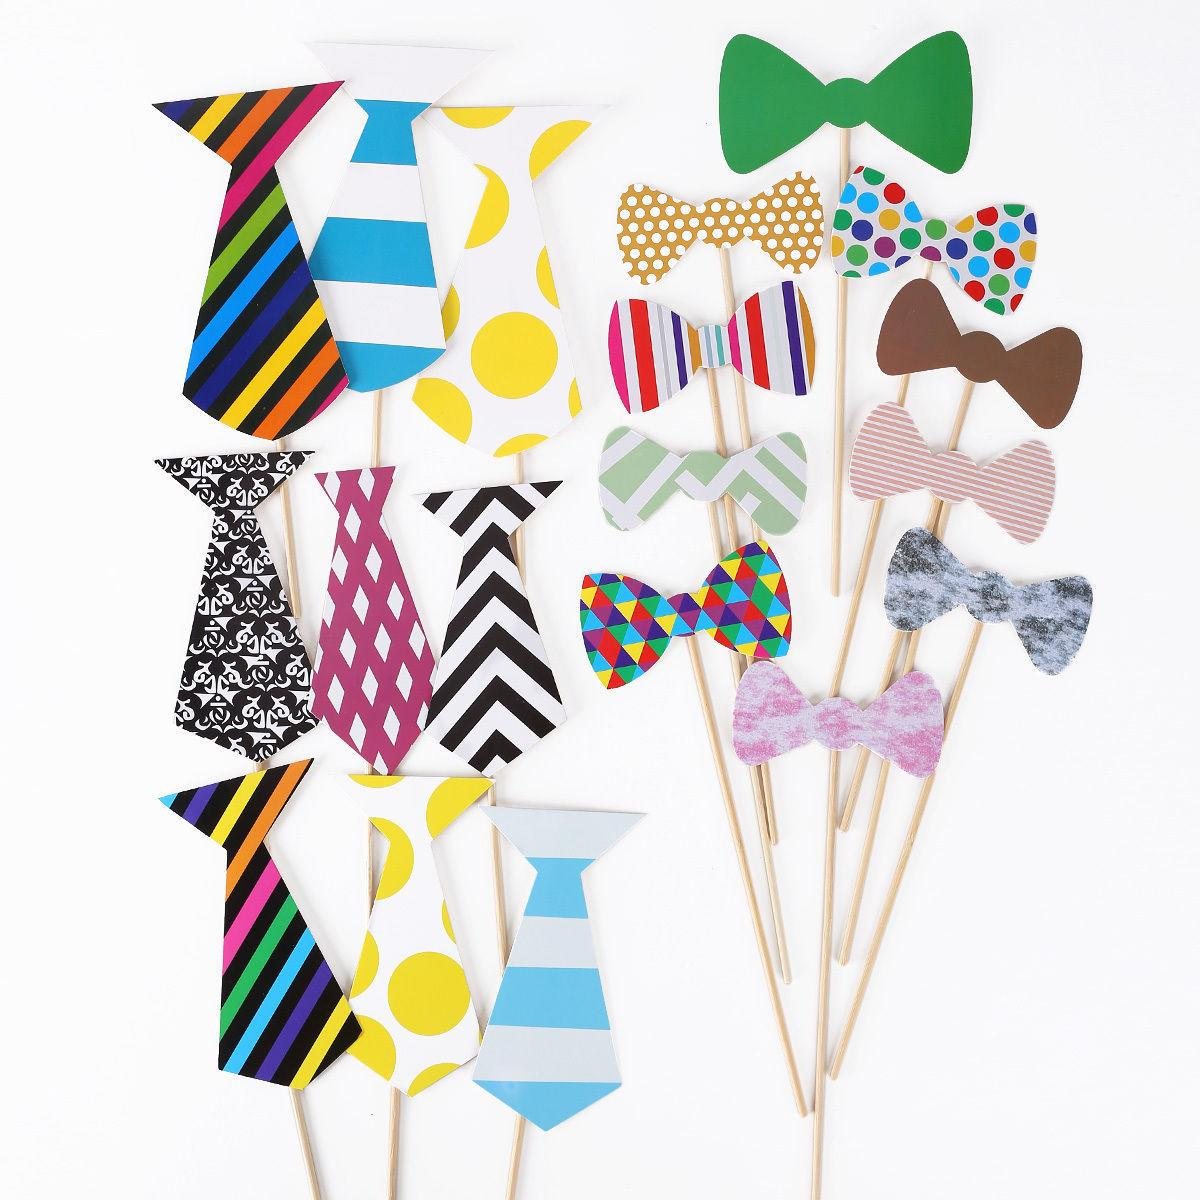 New Arrival Wedding Party Photo Booth Props Set of 76 Mustache On A Stick Photobooth Funny Masks Bridesmaid Gifts Wedding Xmas decoration